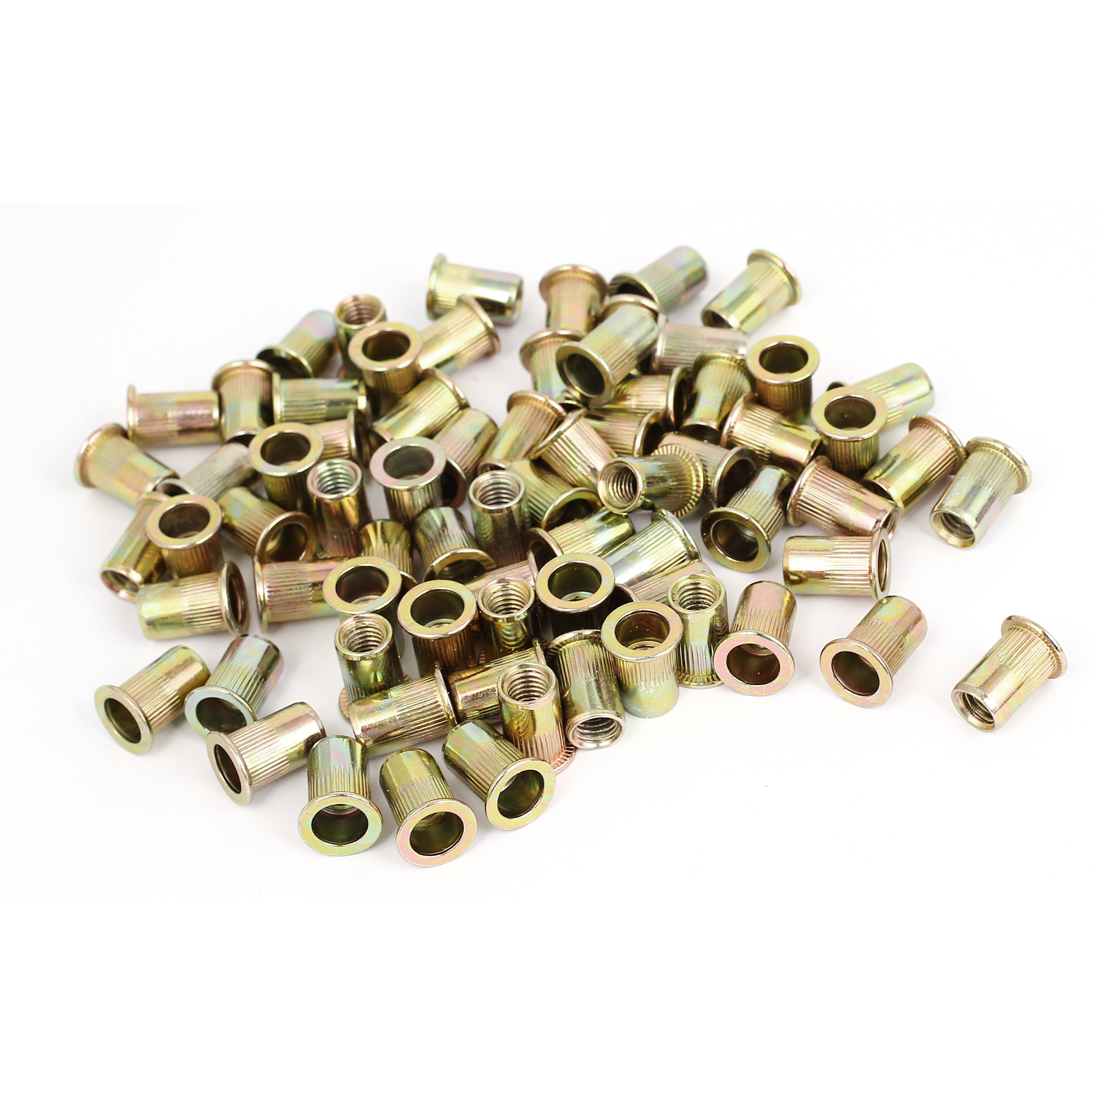 100 Pcs M8x18mm Knurled Body Flat Head Blind Rivet Nut Insert Nutserts